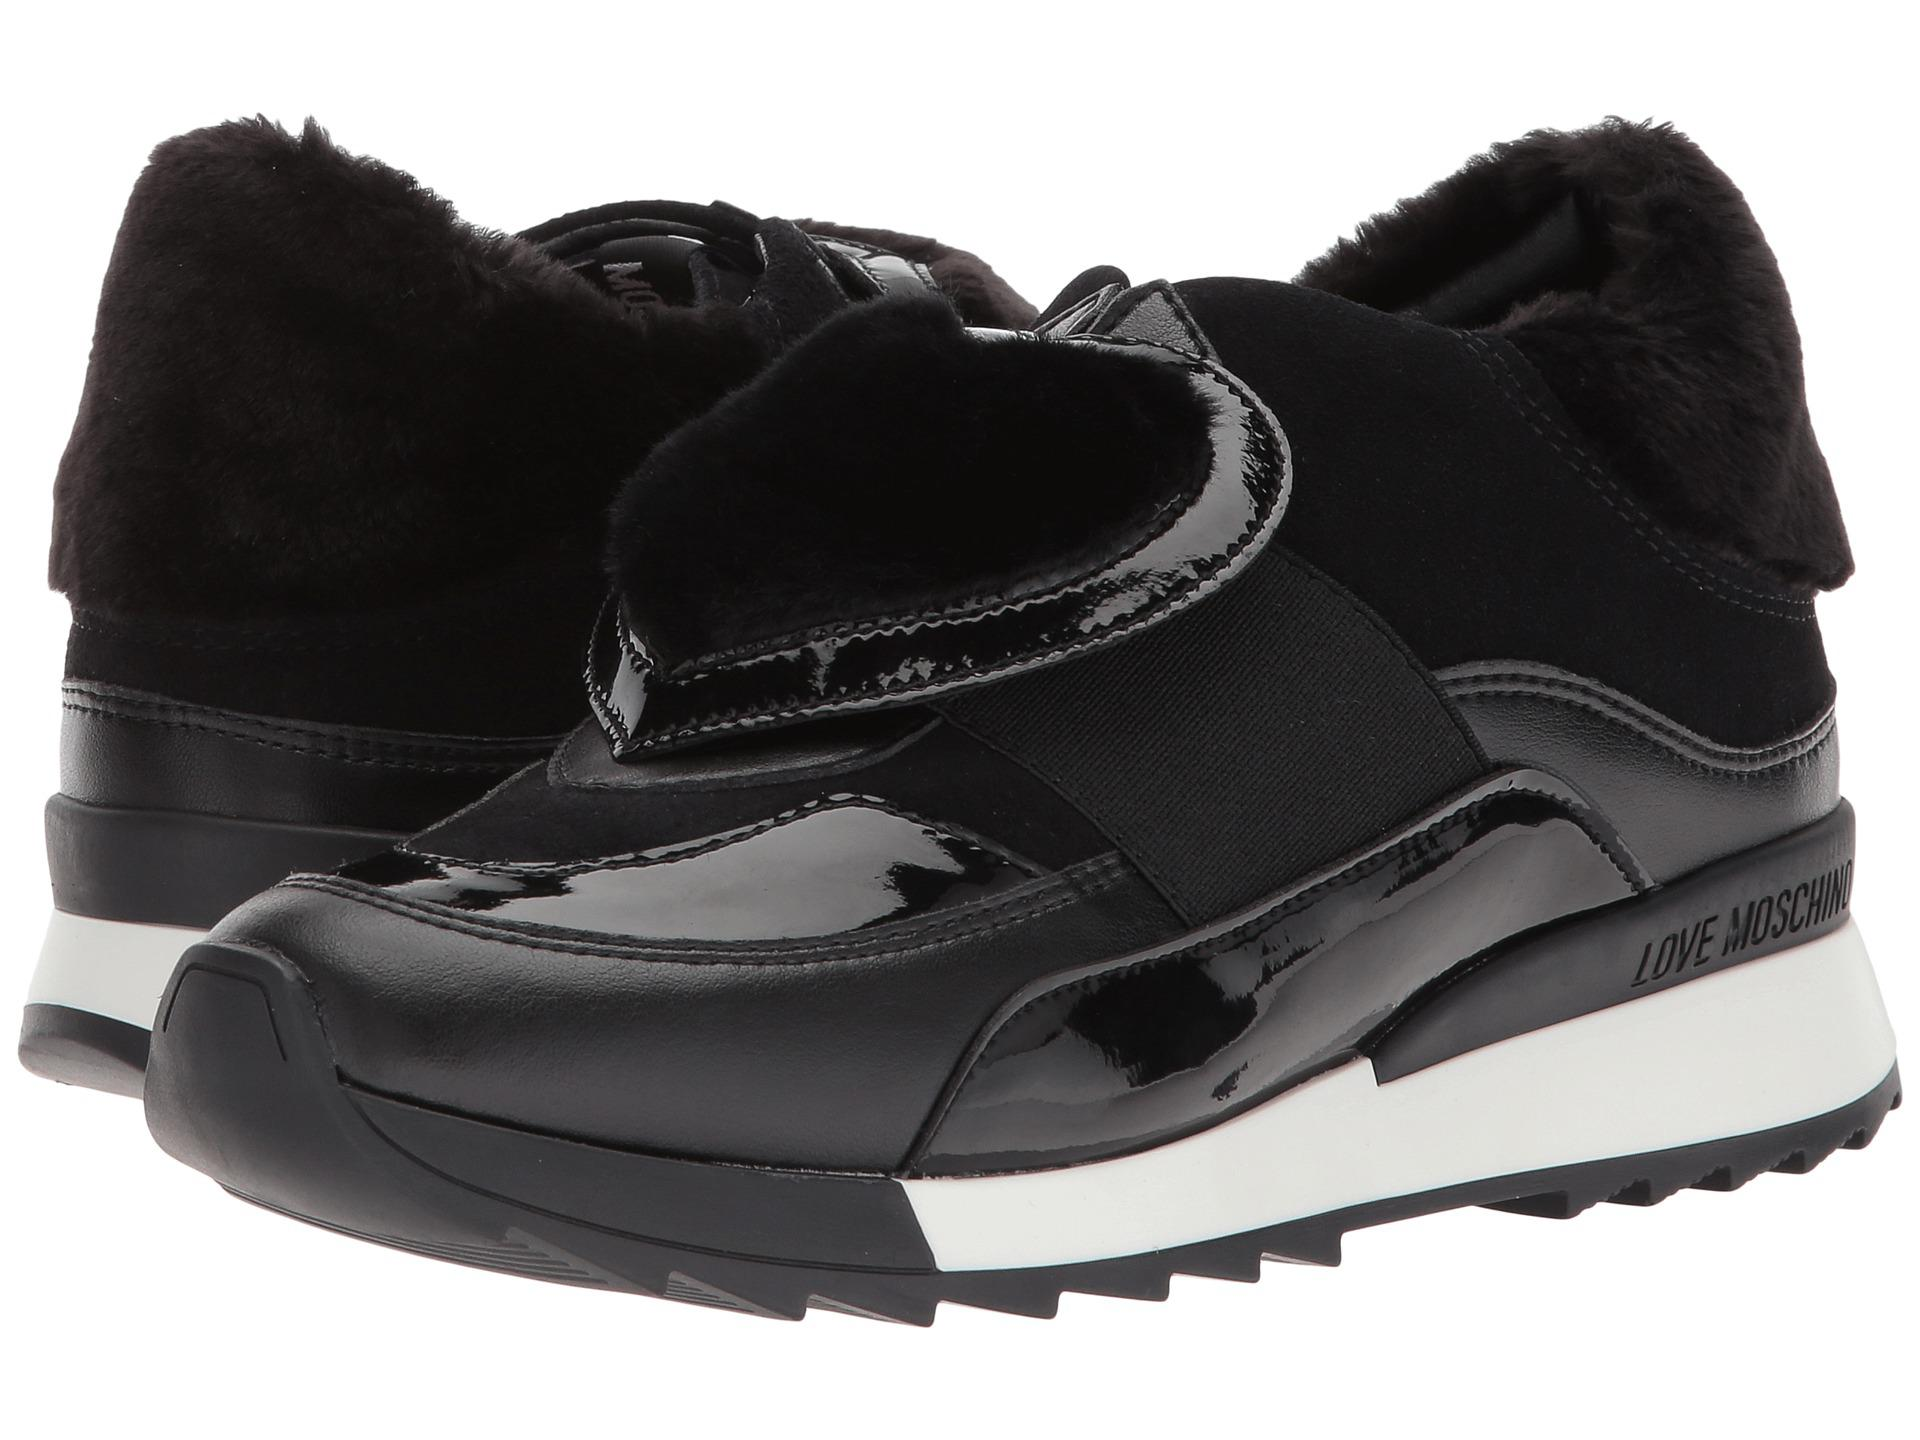 1beff14ea2 Gallery. Previously sold at: Zappos Luxury · Women's Platform Sneakers